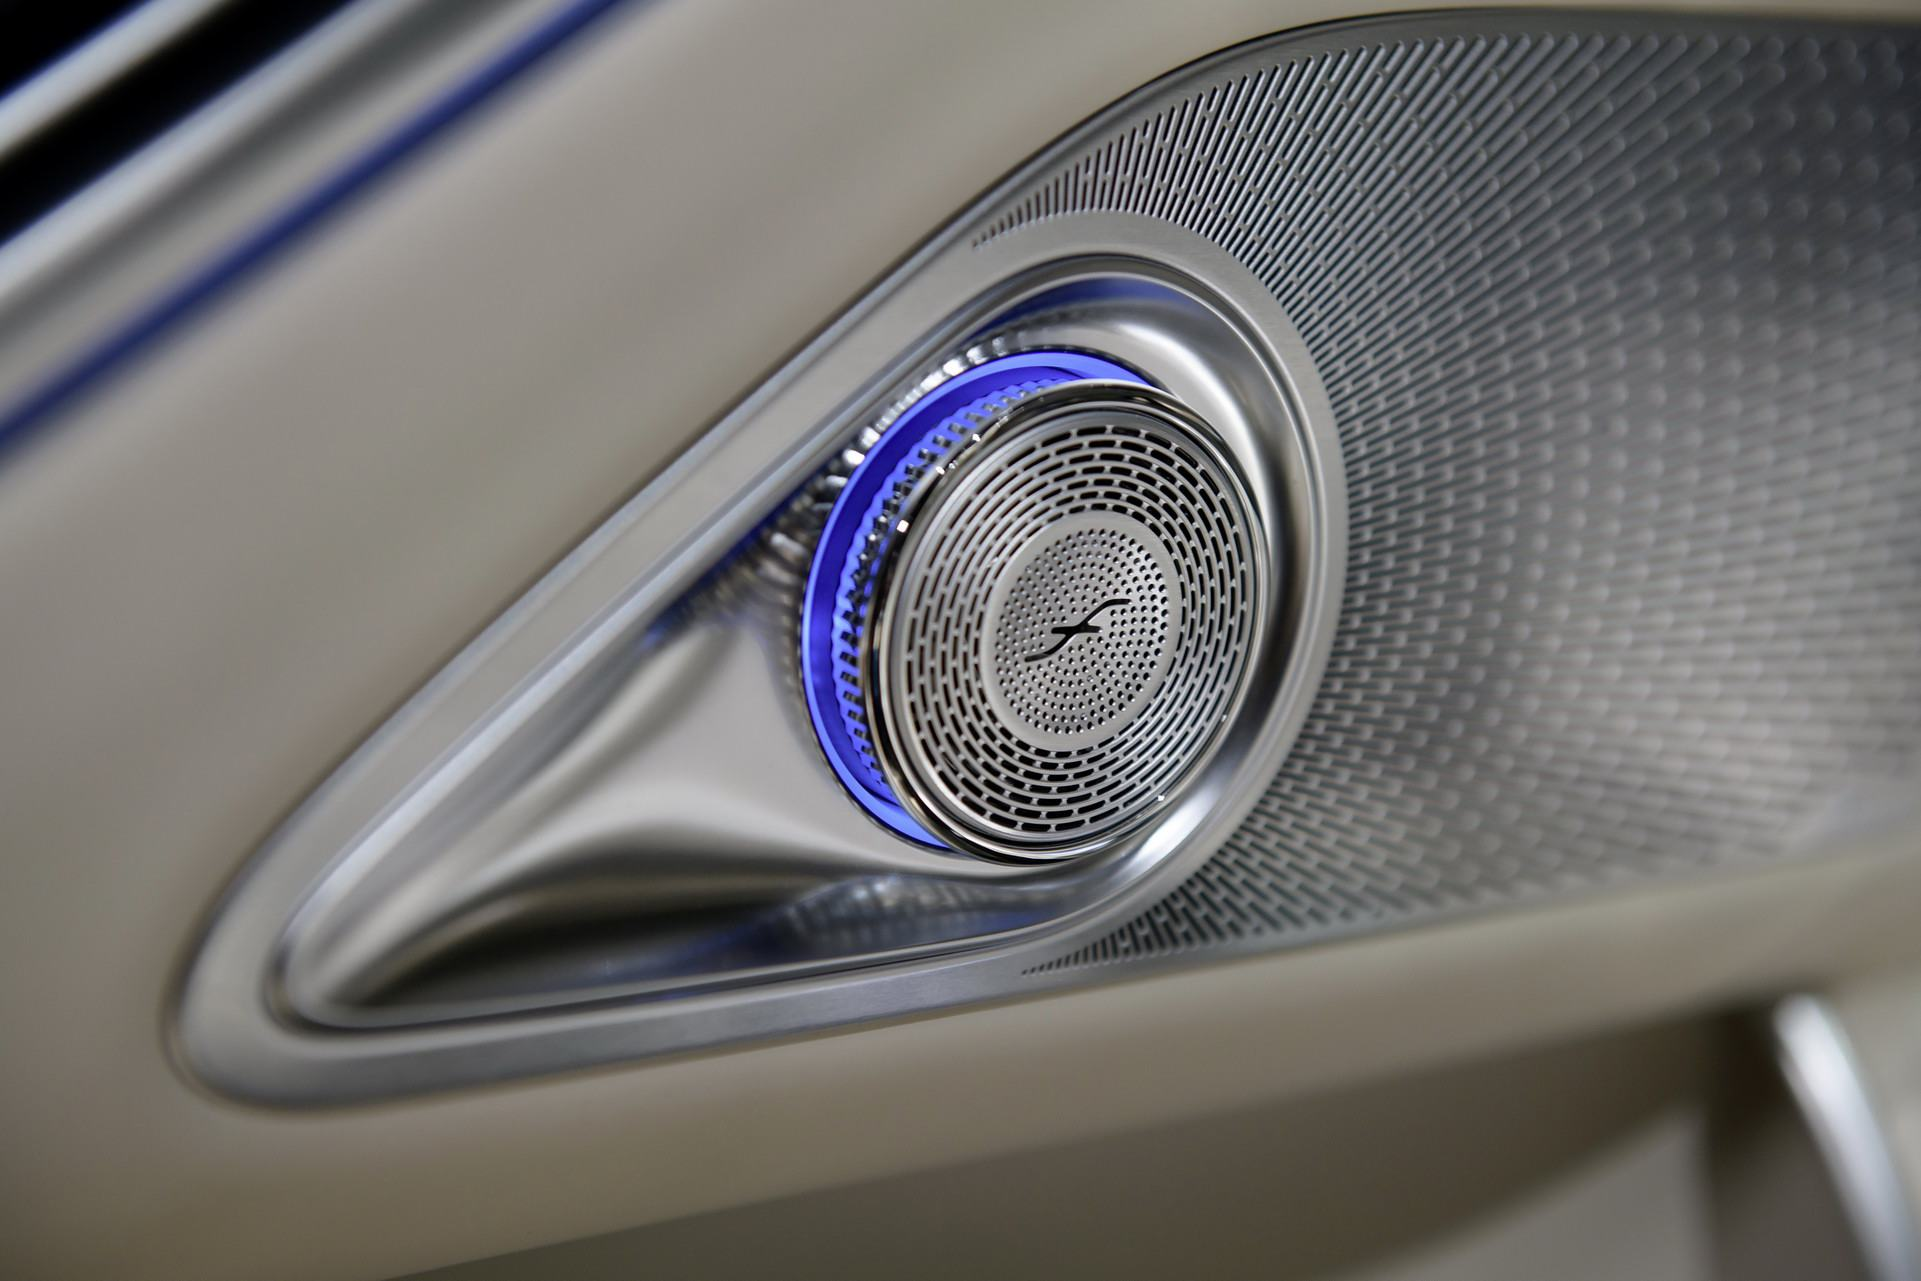 Loa-chat-luong-cao-xe-Mercedes-Maybach-S-Class-2021-muaxegiatot-vn